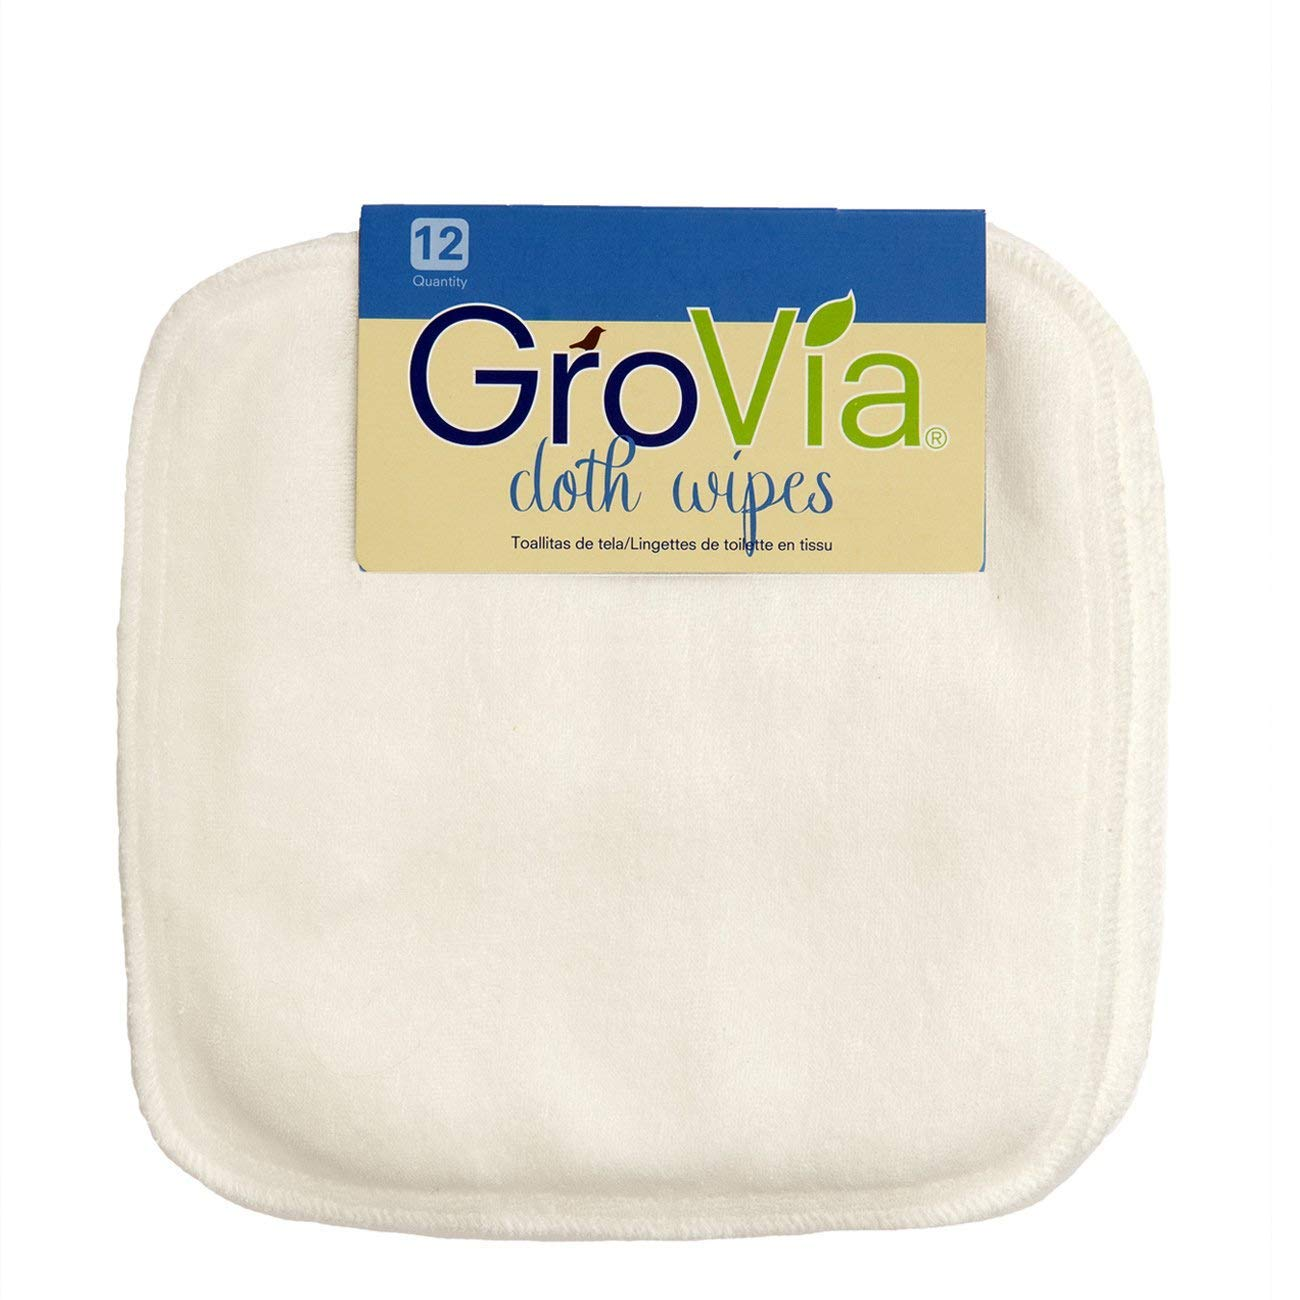 12 Count Abalone GroVia Reusable Cloth Diapering Wipes